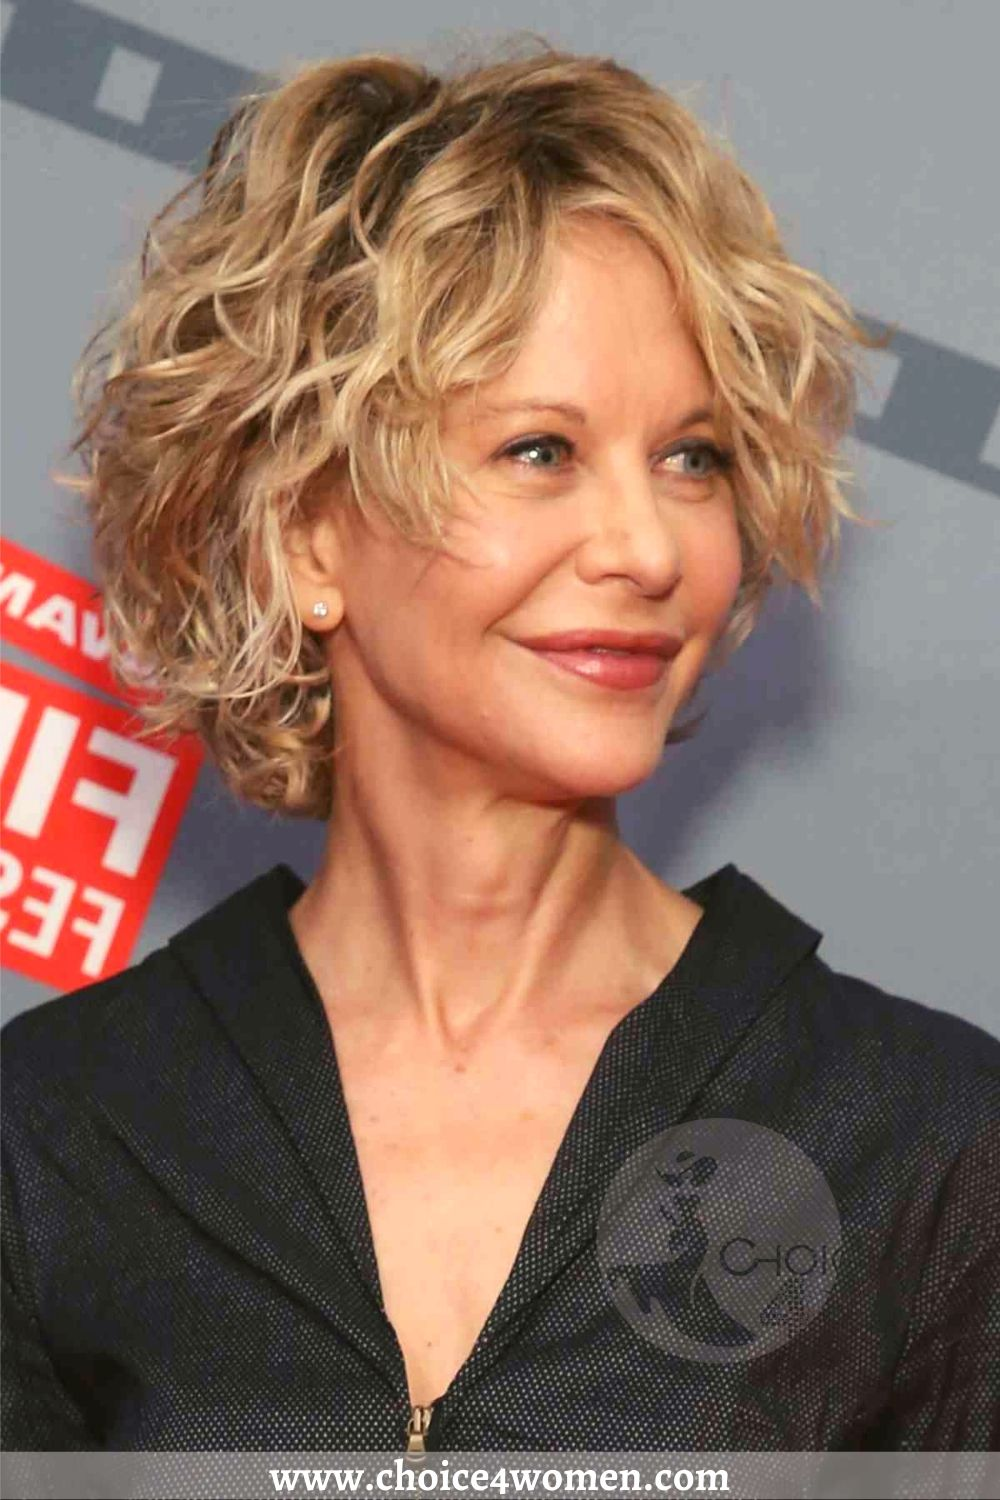 15 Hottest Short Hairstyles For Women Over 50 To Look Younger